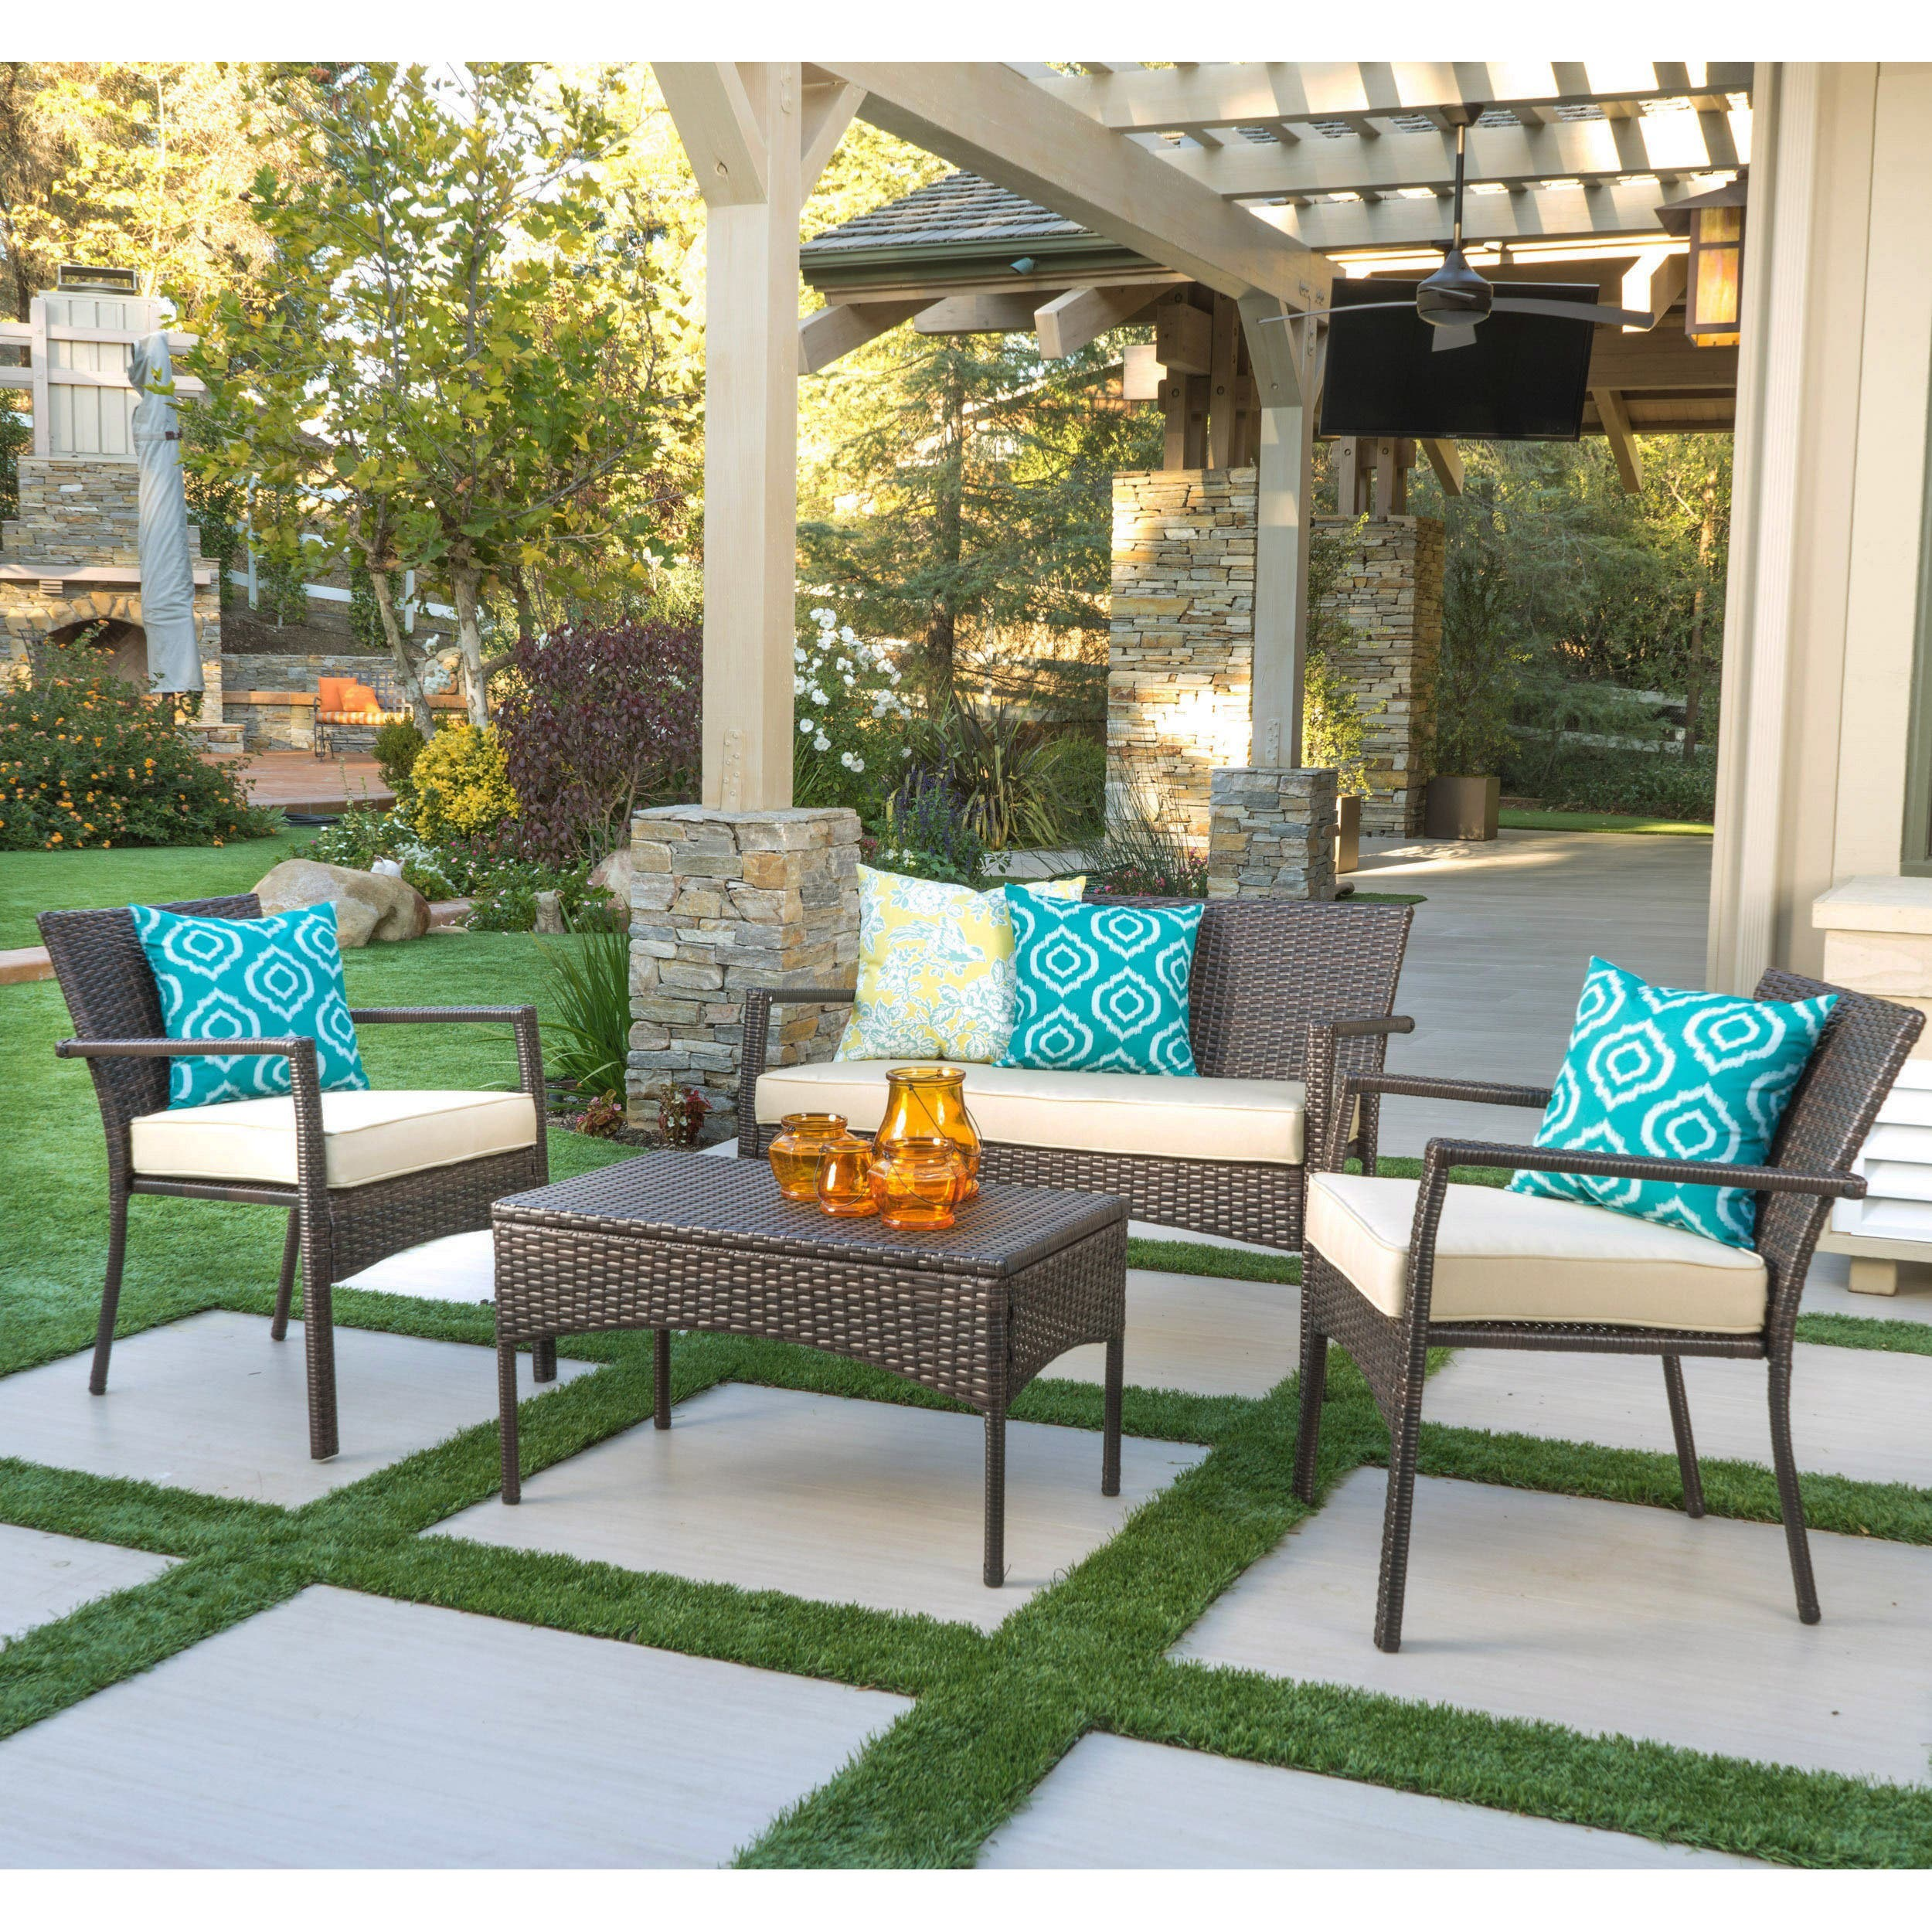 Best Deal Home Furniture: Buy Outdoor Sofas, Chairs & Sectionals Online At Overstock